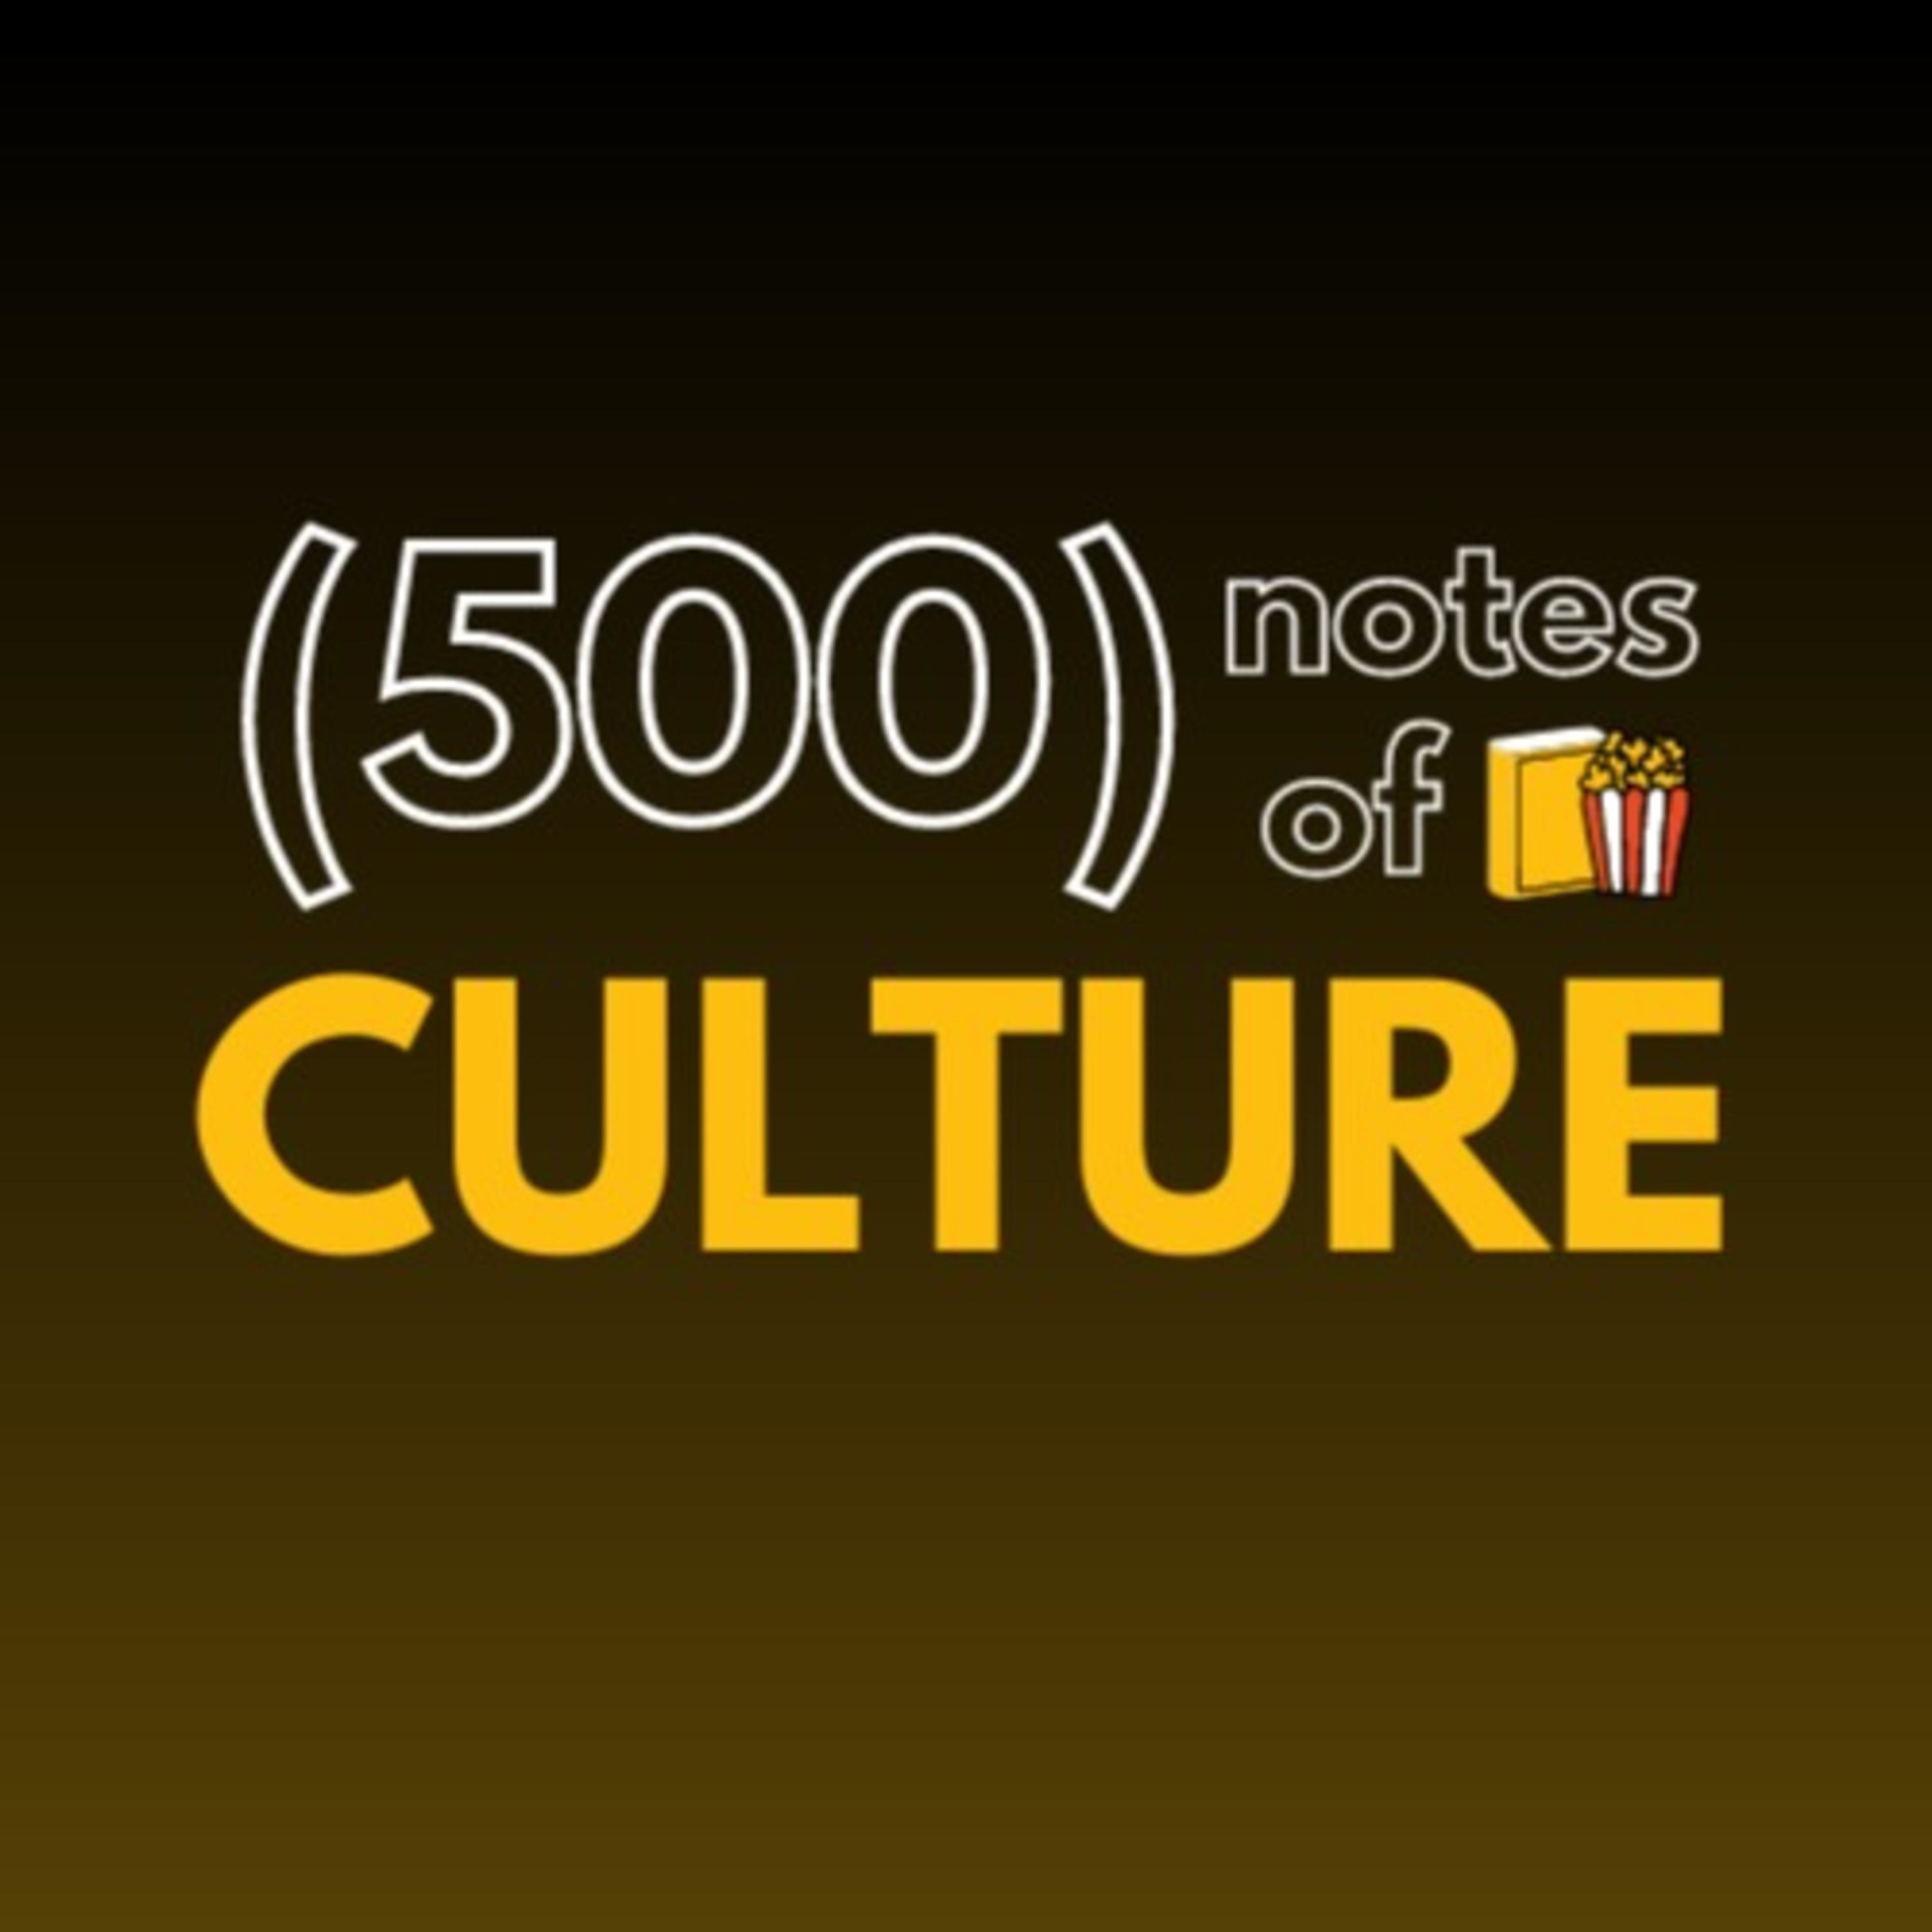 (500) notes of Culture